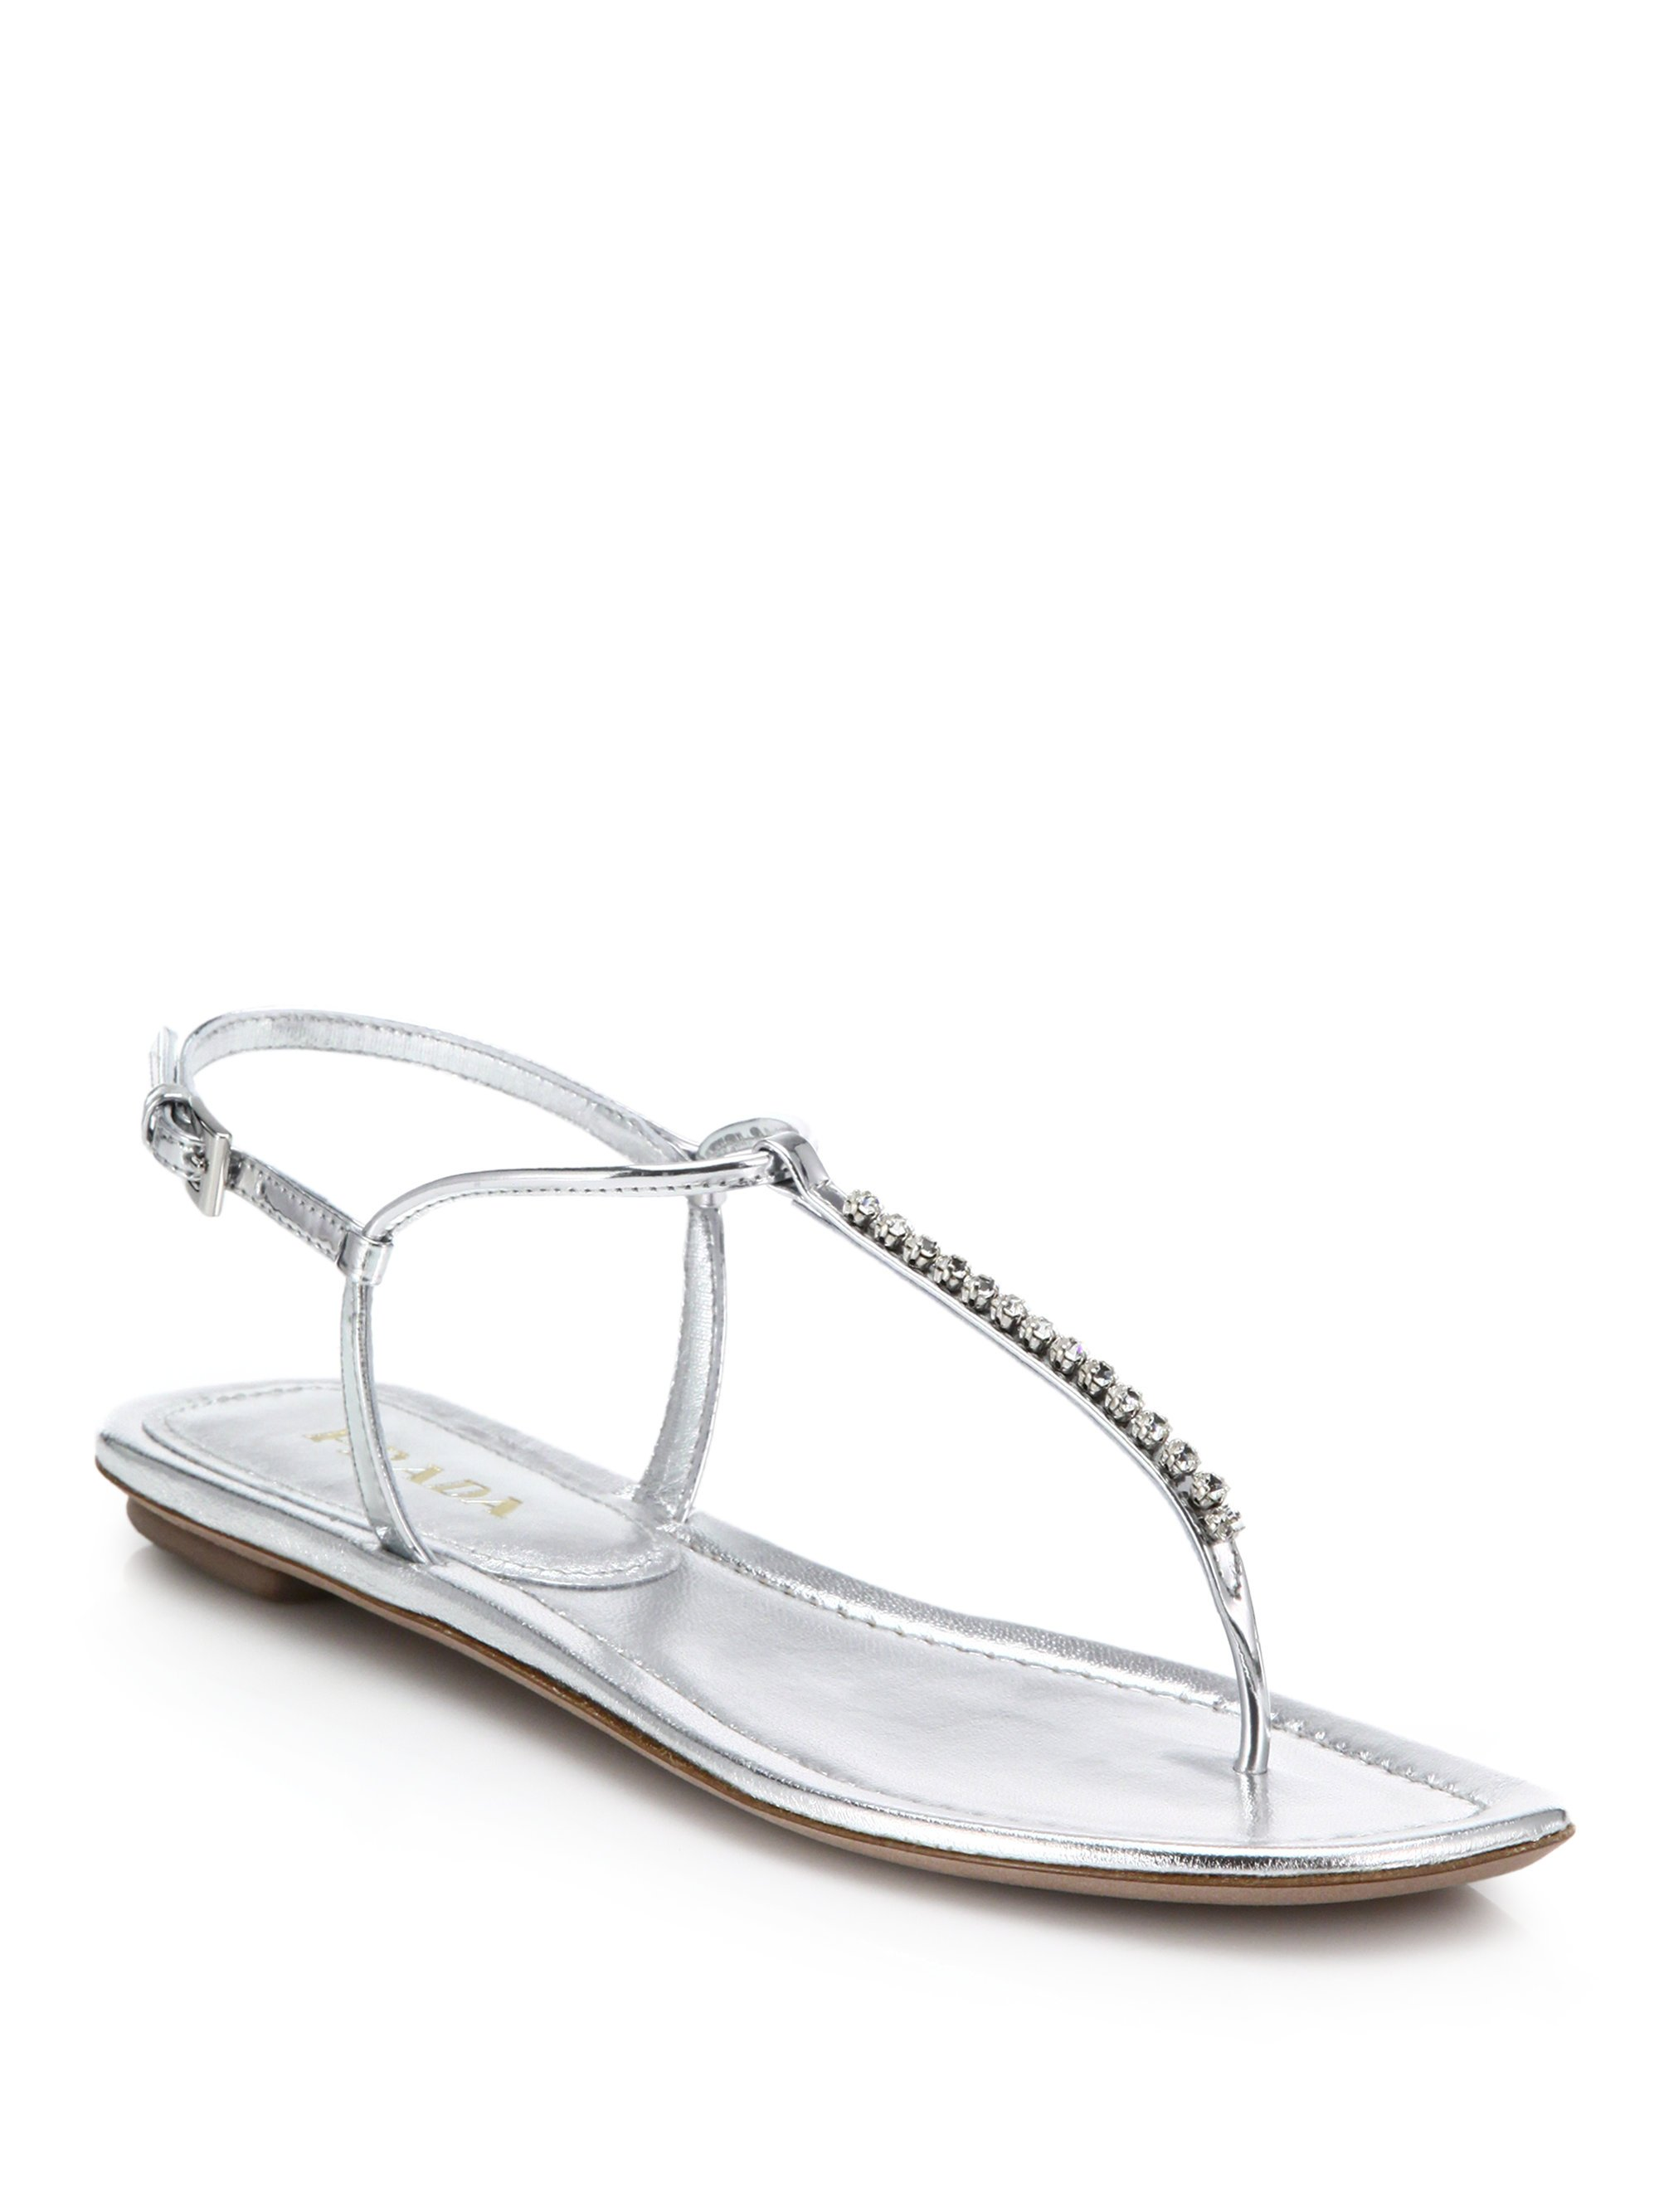 0270b4333 Prada Swarovski Crystal Flat Metallic Leather Sandals in Metallic - Lyst